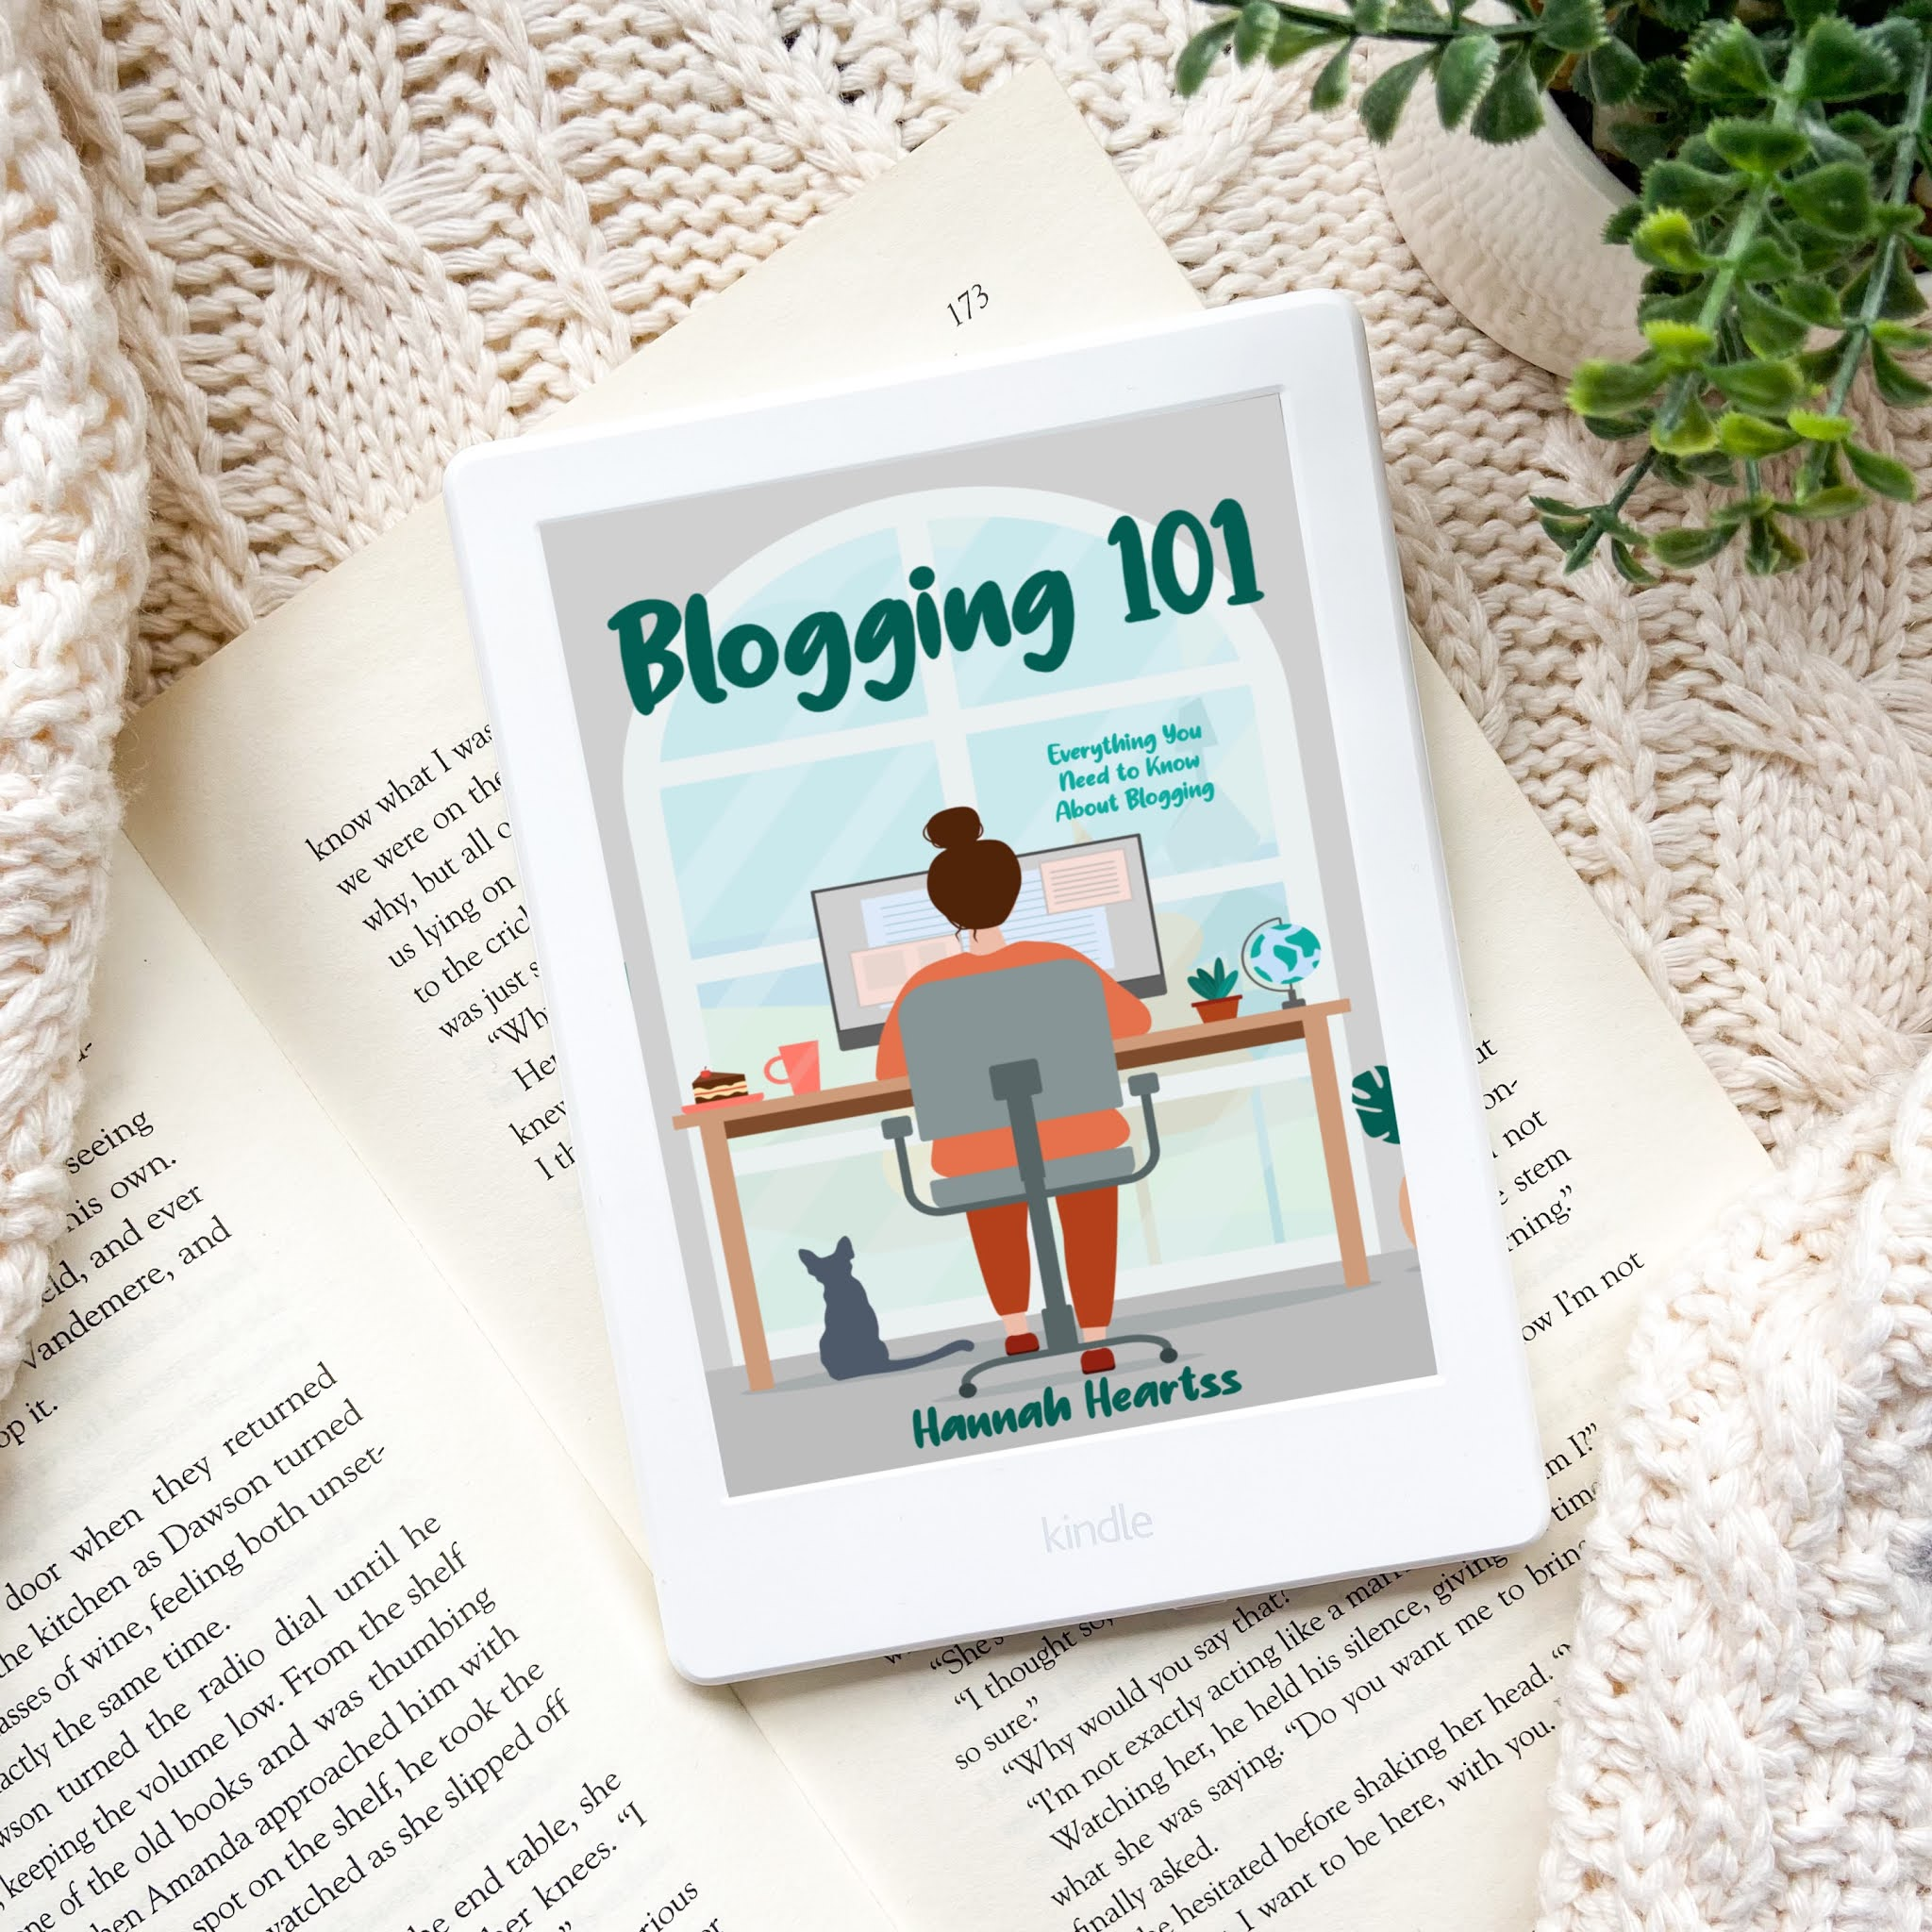 Blogging 101: Everything You Need to Know About Blogging